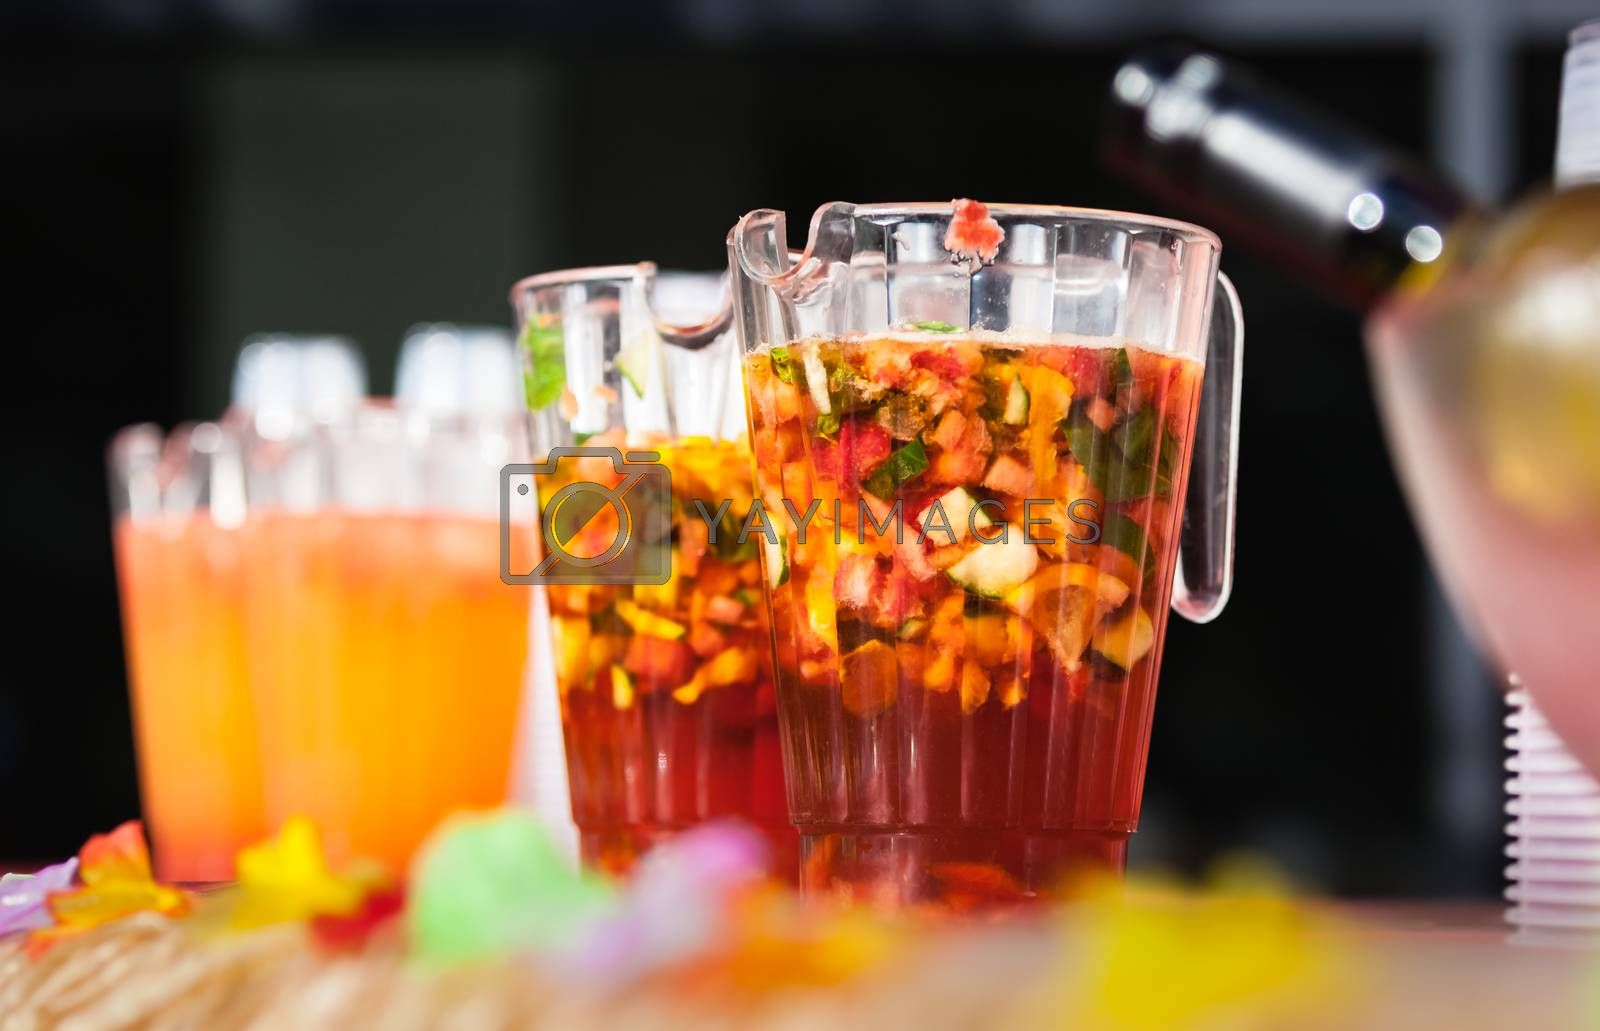 Jugs containing alcoholic fresh fruit punch to be served for guests